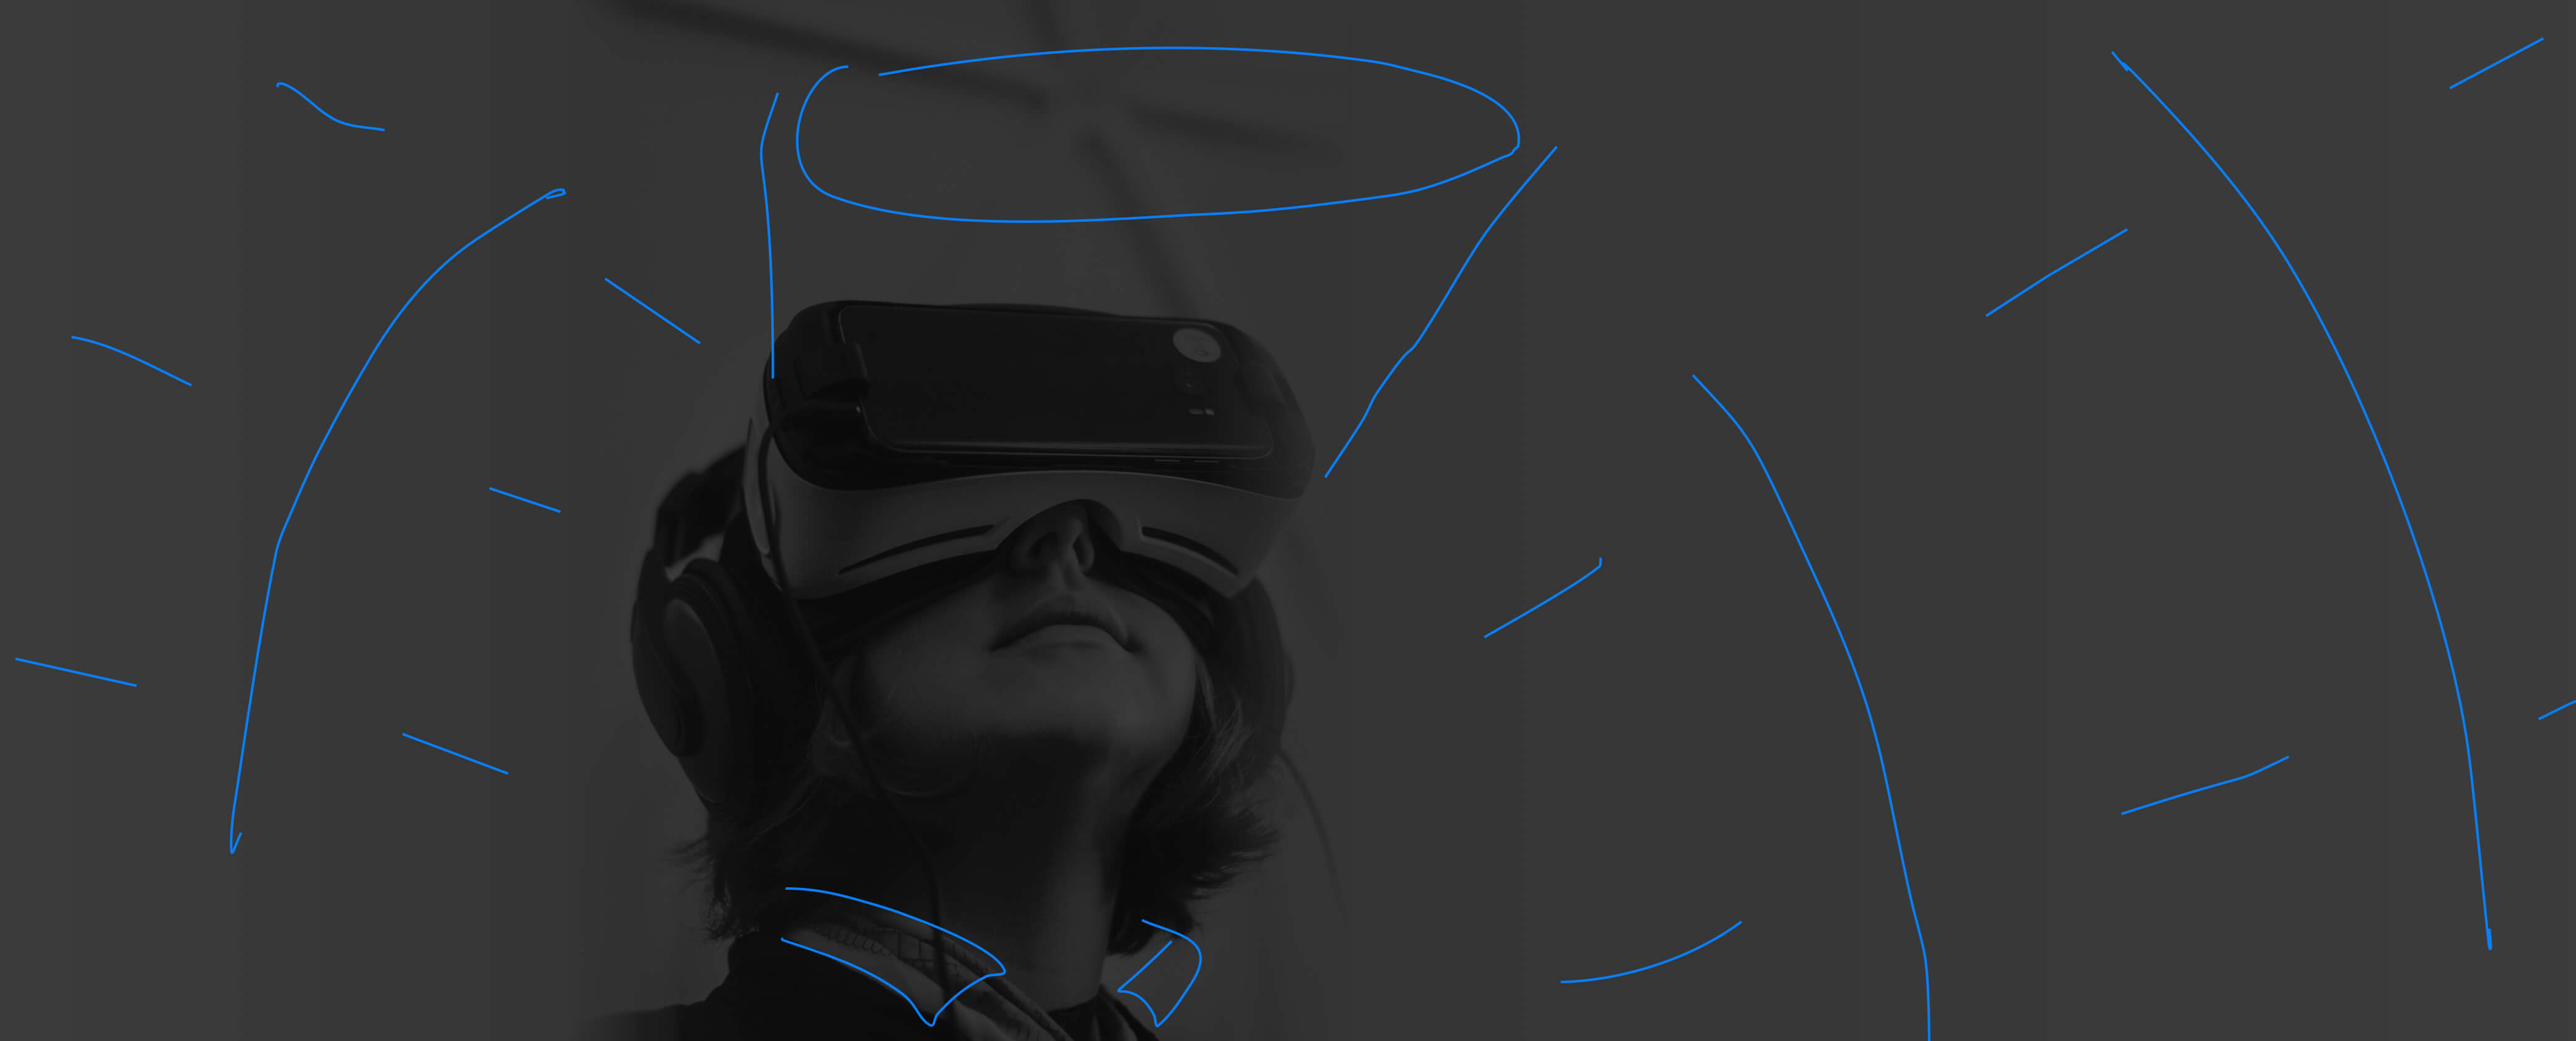 VR, a new type of digital experience